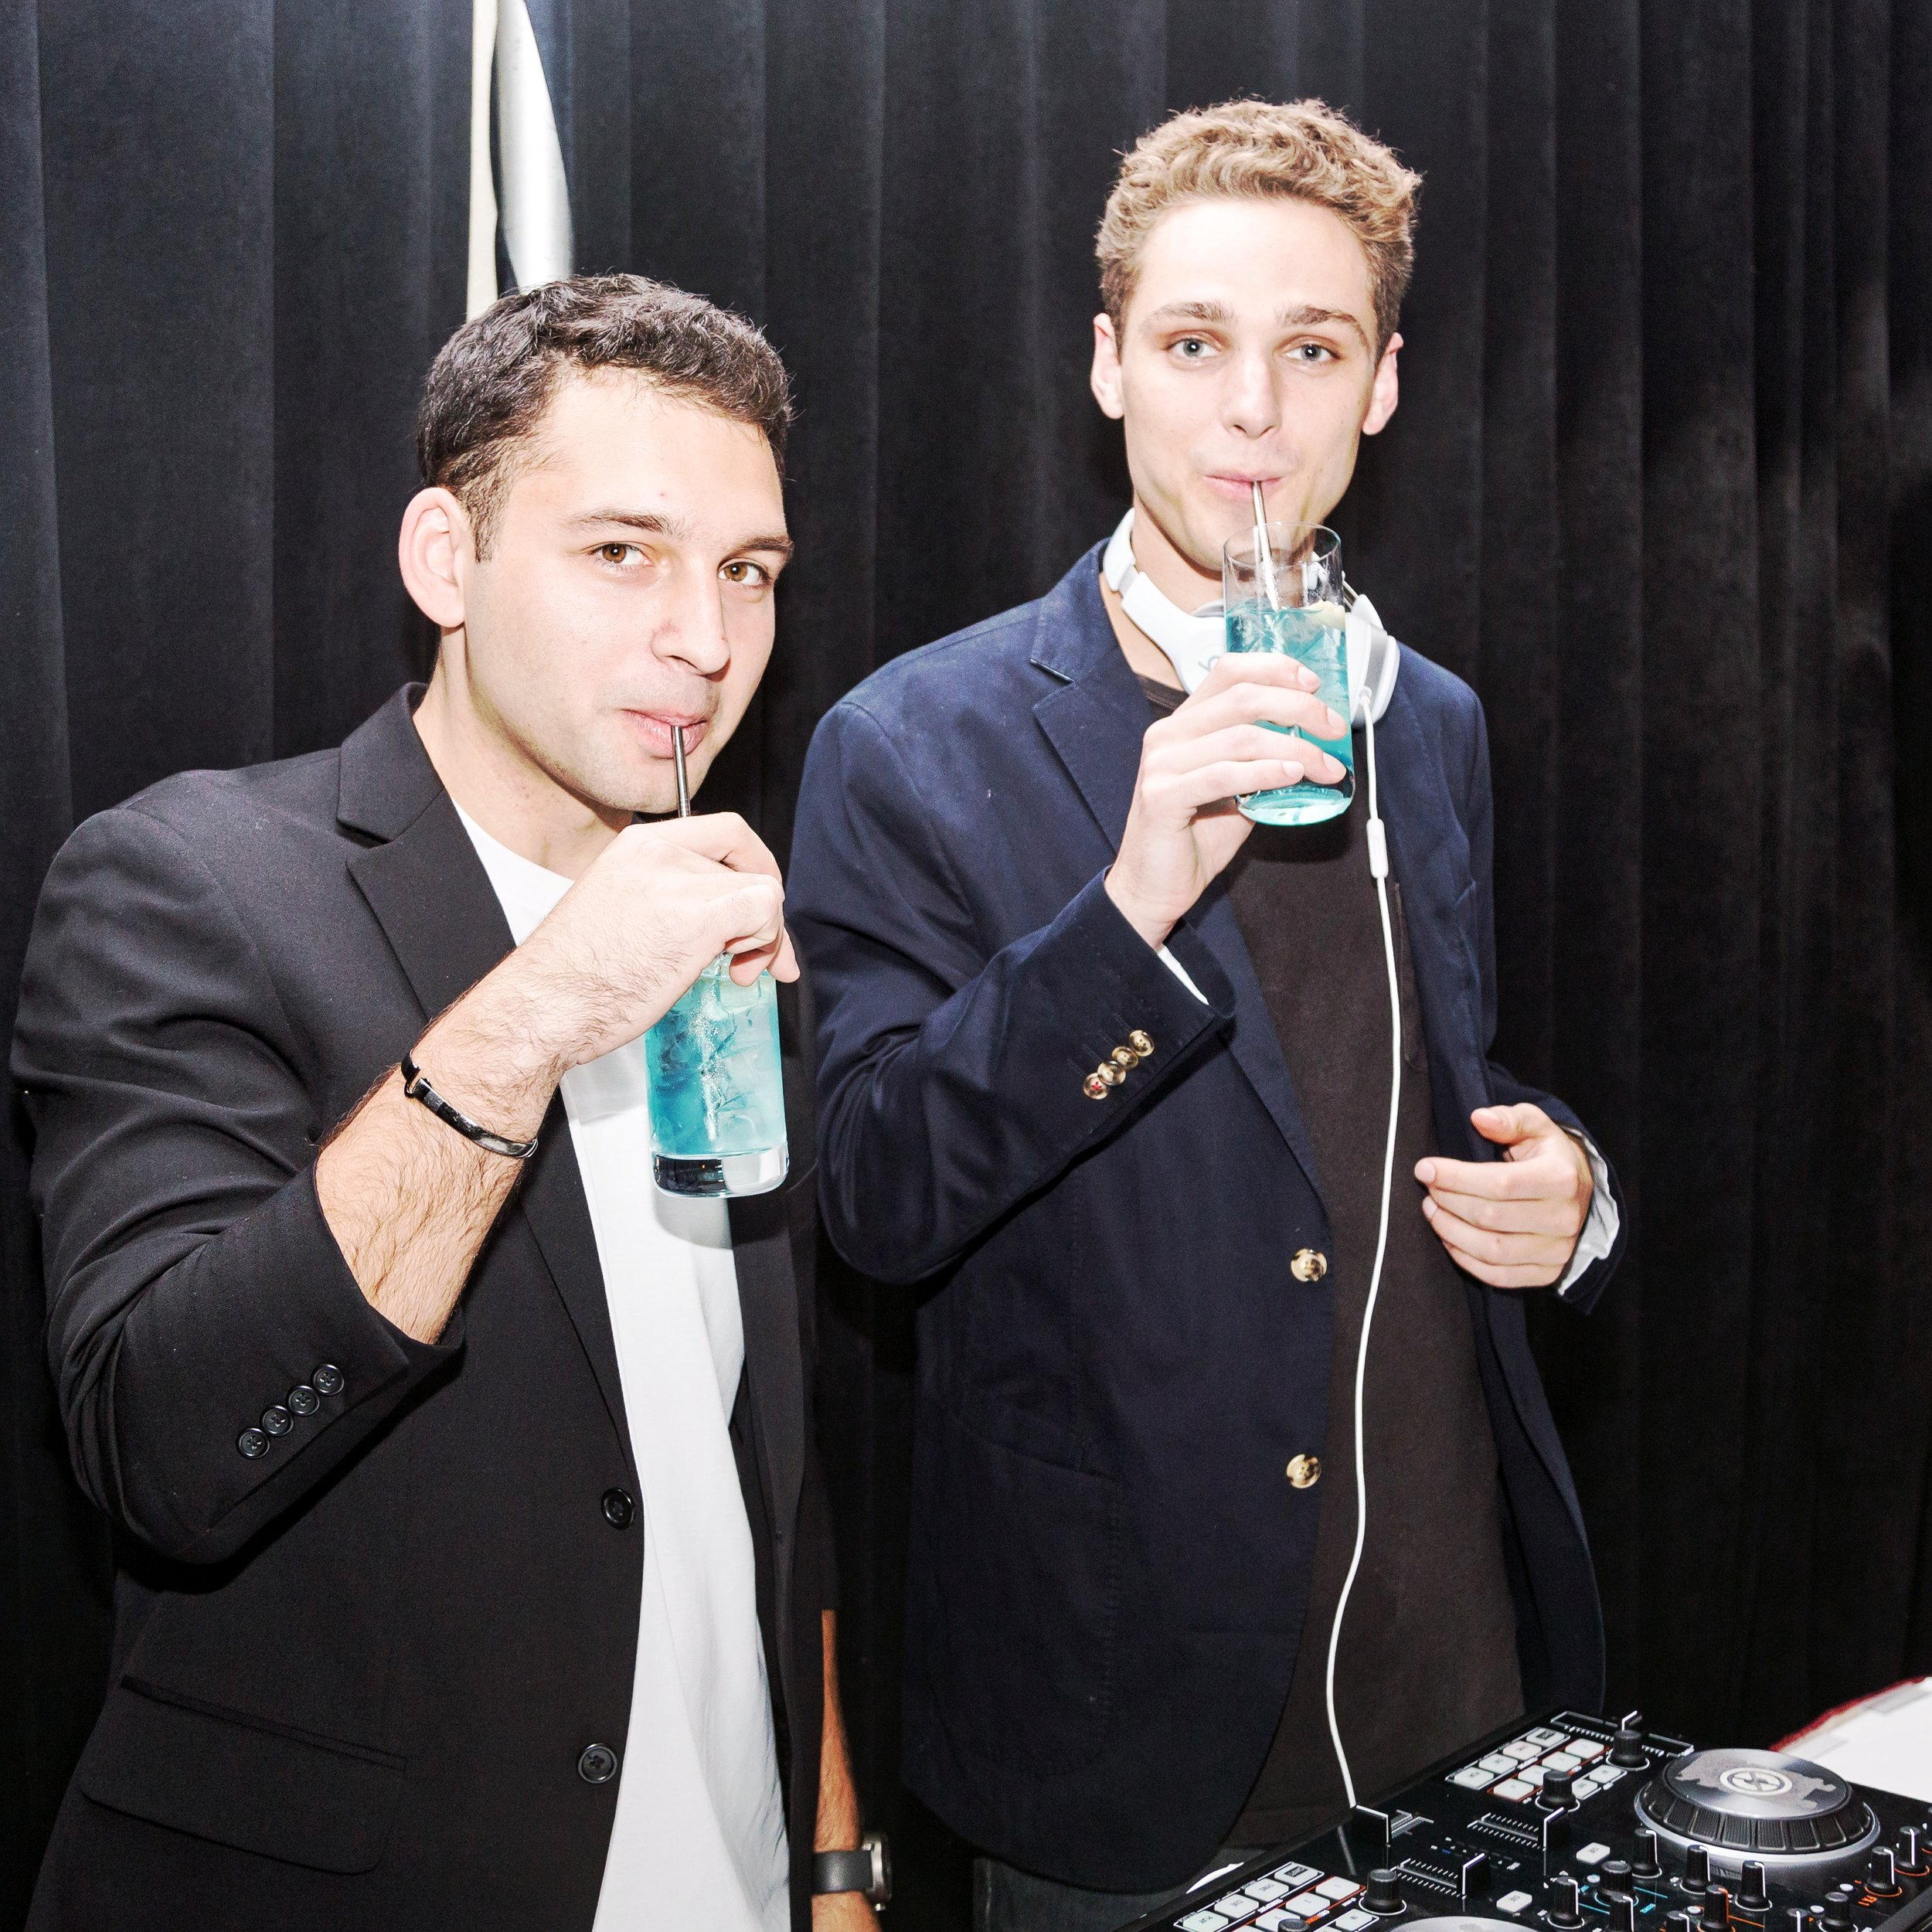 DJ ED AND DJ COCO HAVING A DRINK WITH THE LAST STRAW